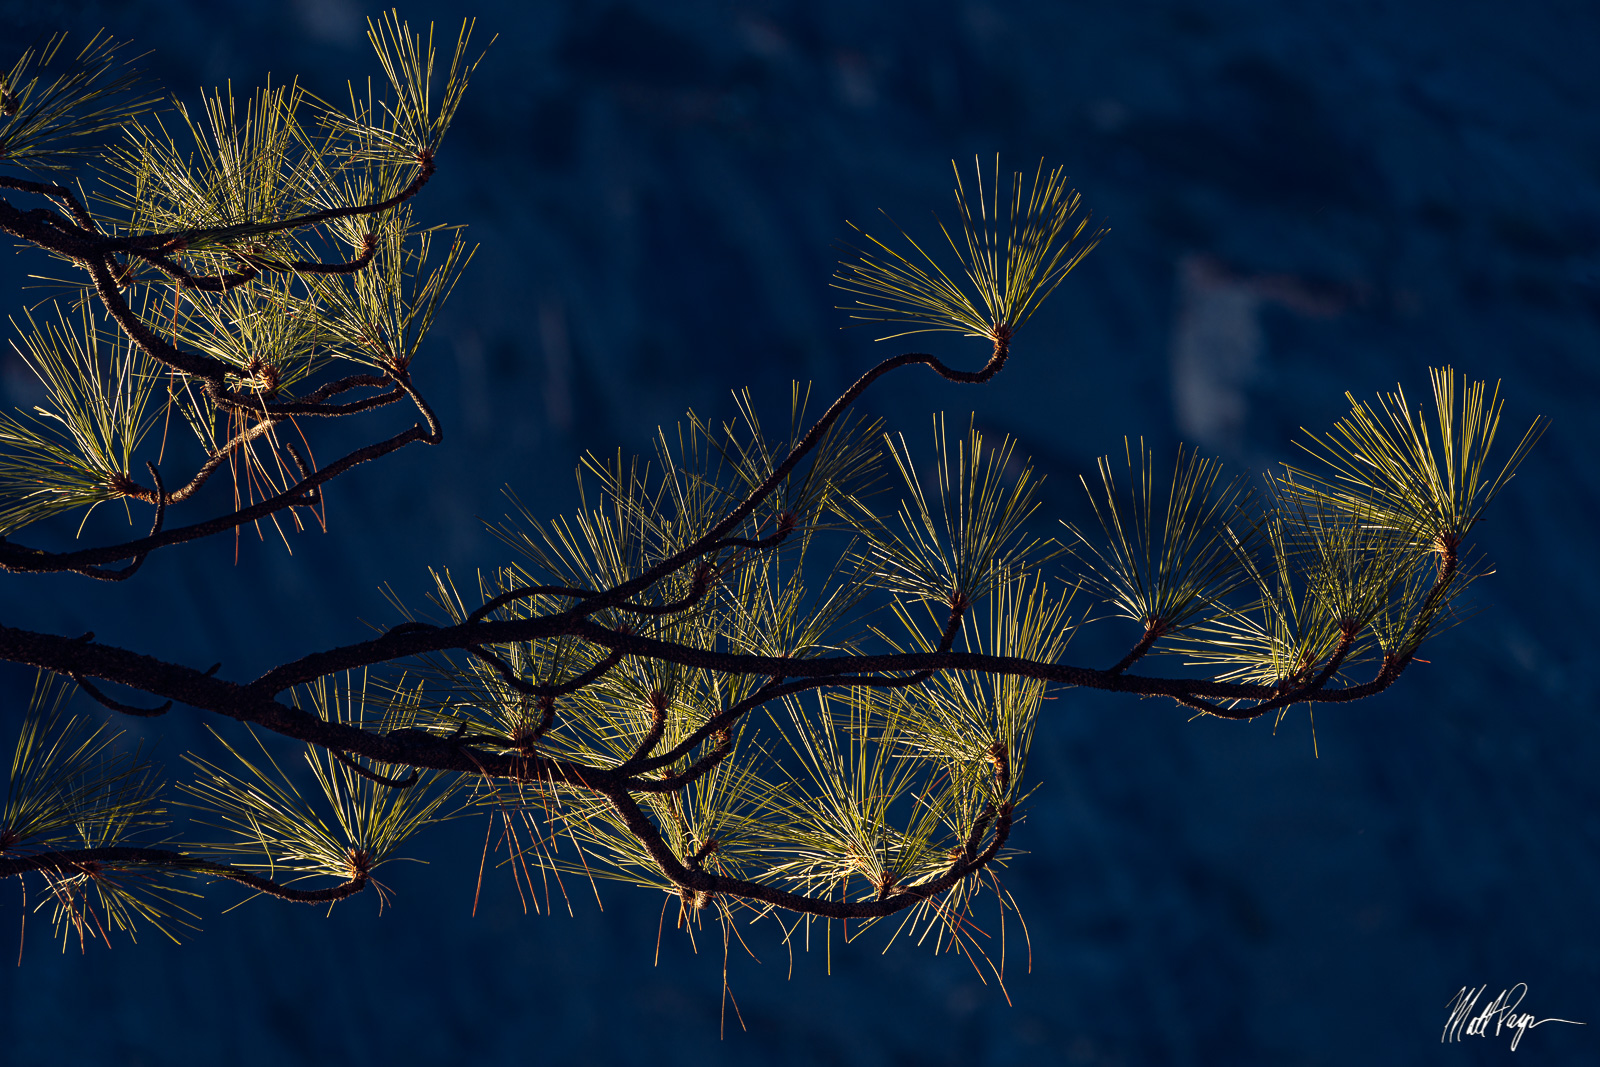 Pine Needles, Yosemite National Park, photo